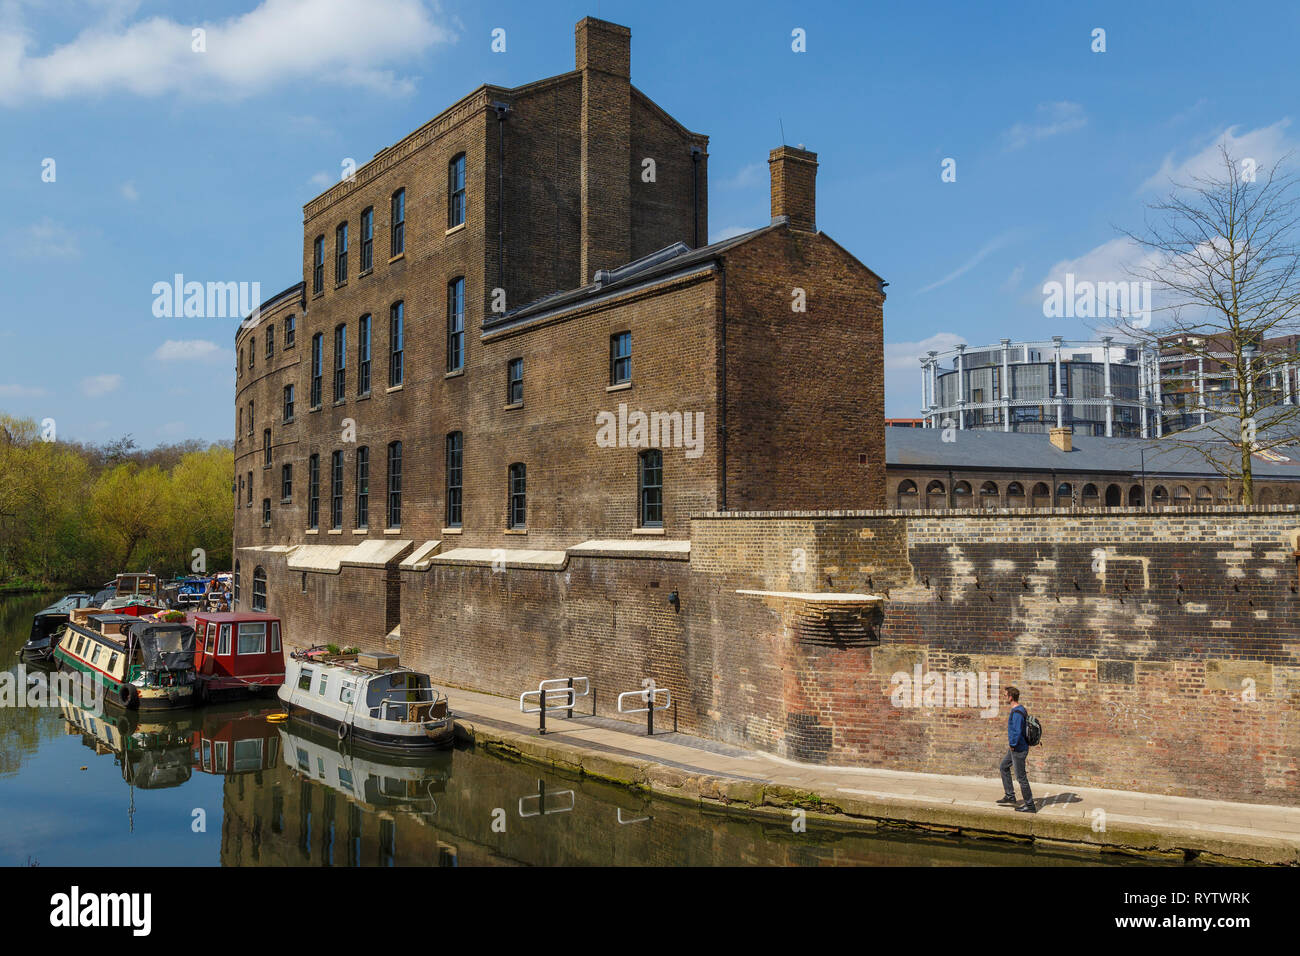 The converted Coal Office building beside Regents's Canal Towpath at St Pancras, London, UK. The Gasholder apartments in the background. - Stock Image